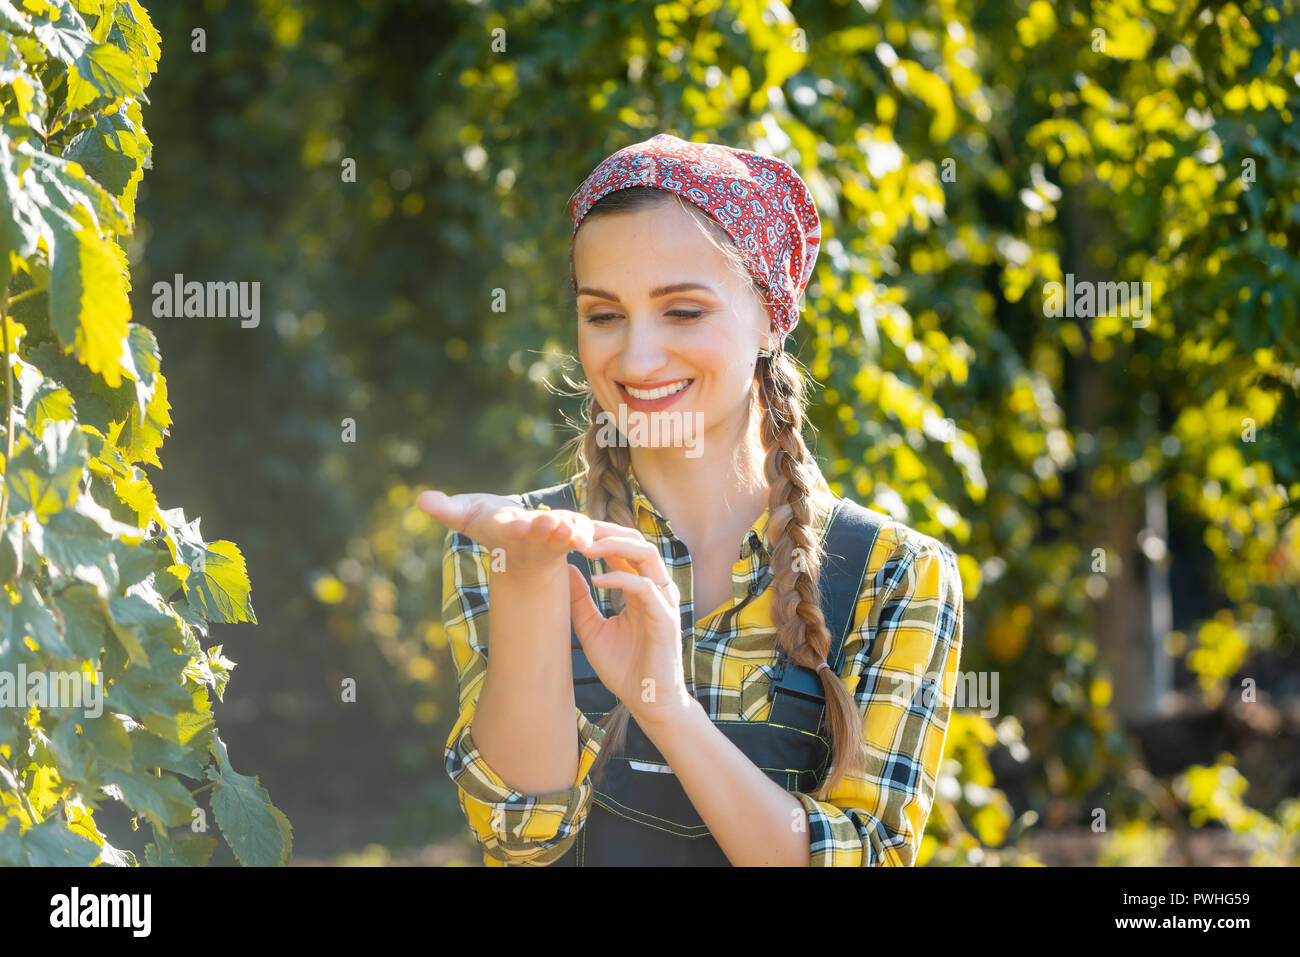 Farmer woman checking the quality of this years hops harvest - Stock Image